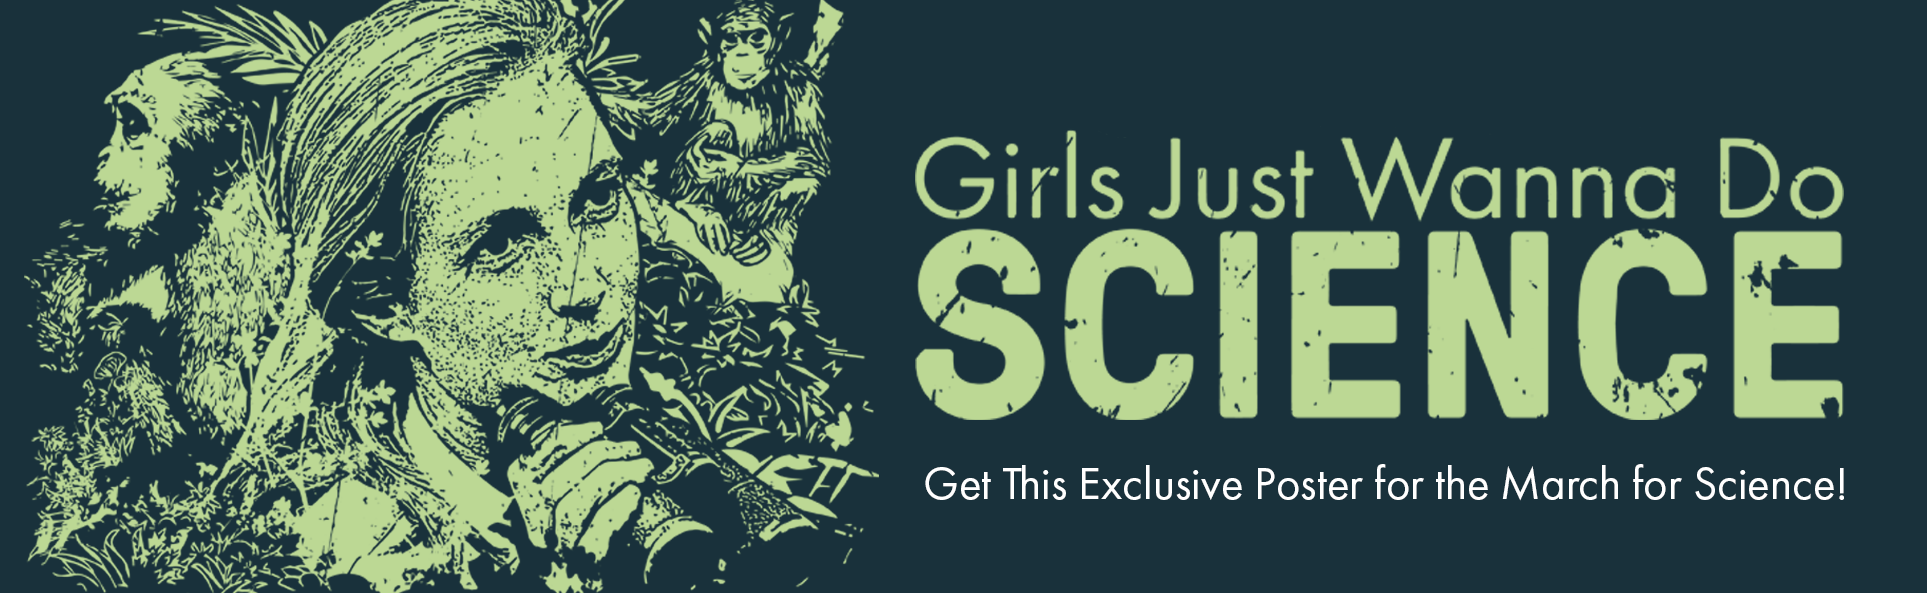 Get an Exclusive Jane Poster for the March for Science!